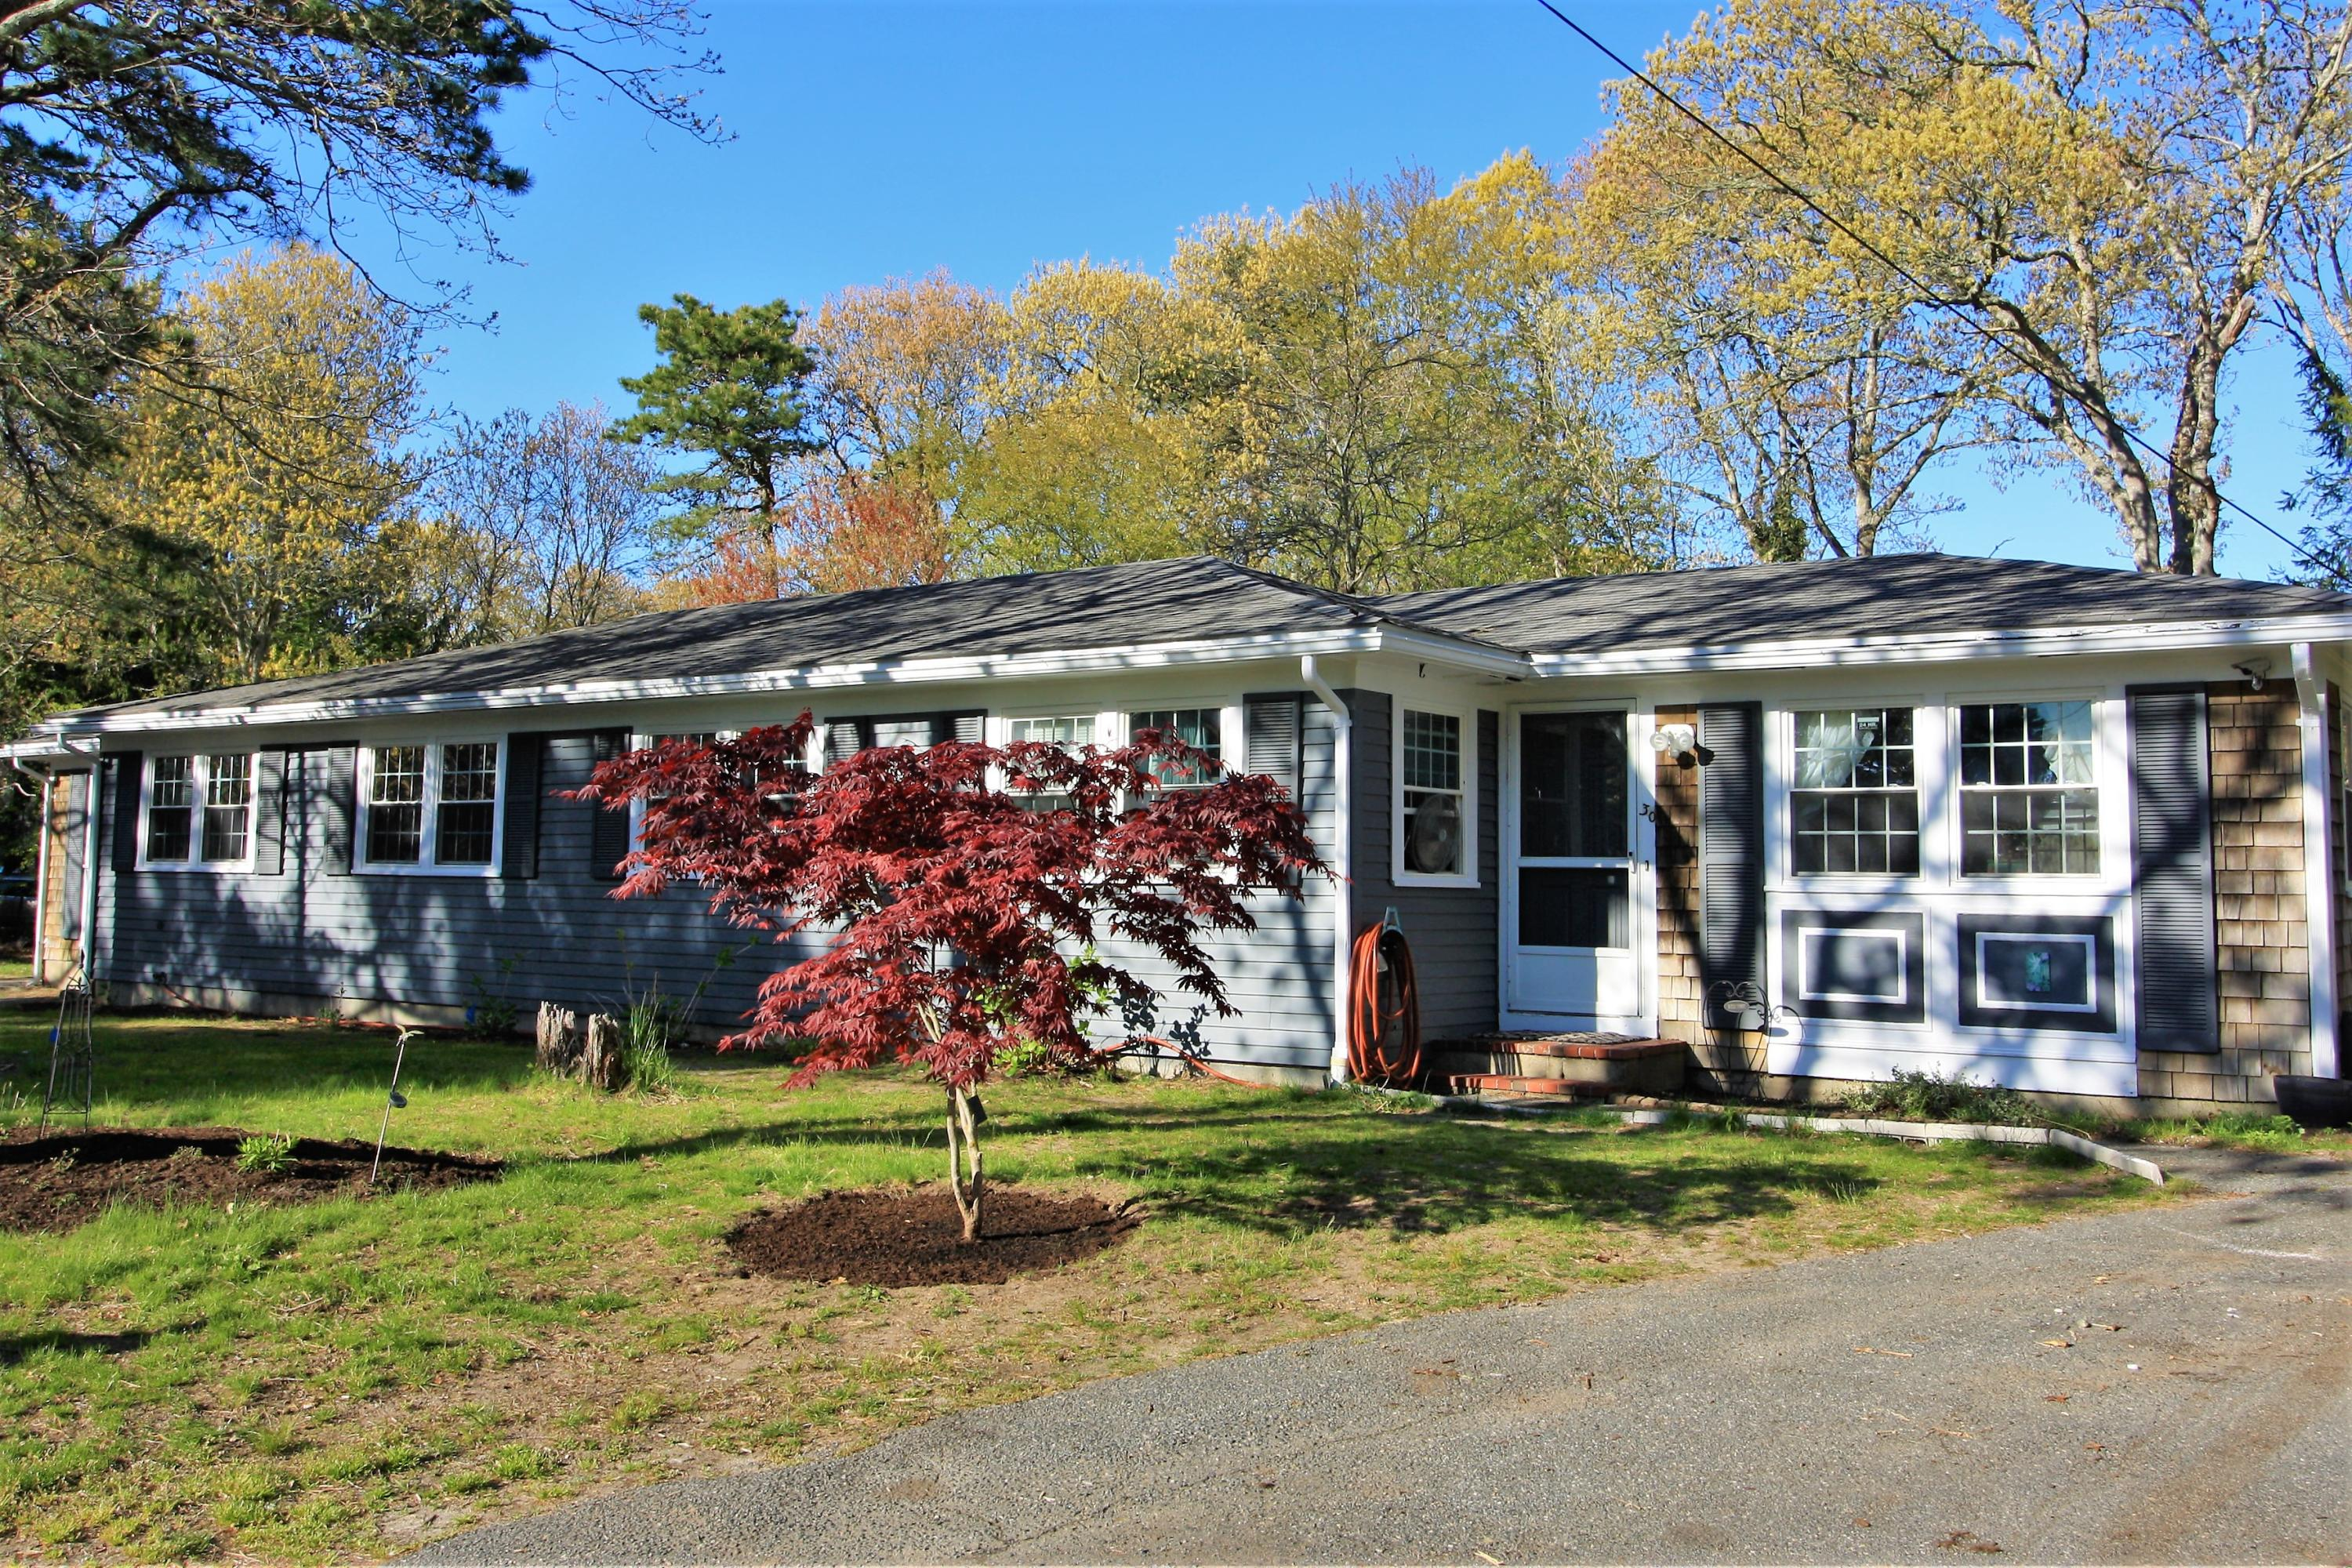 30 & 32 Partridge Valley Road, West Yarmouth MA, 02673 details